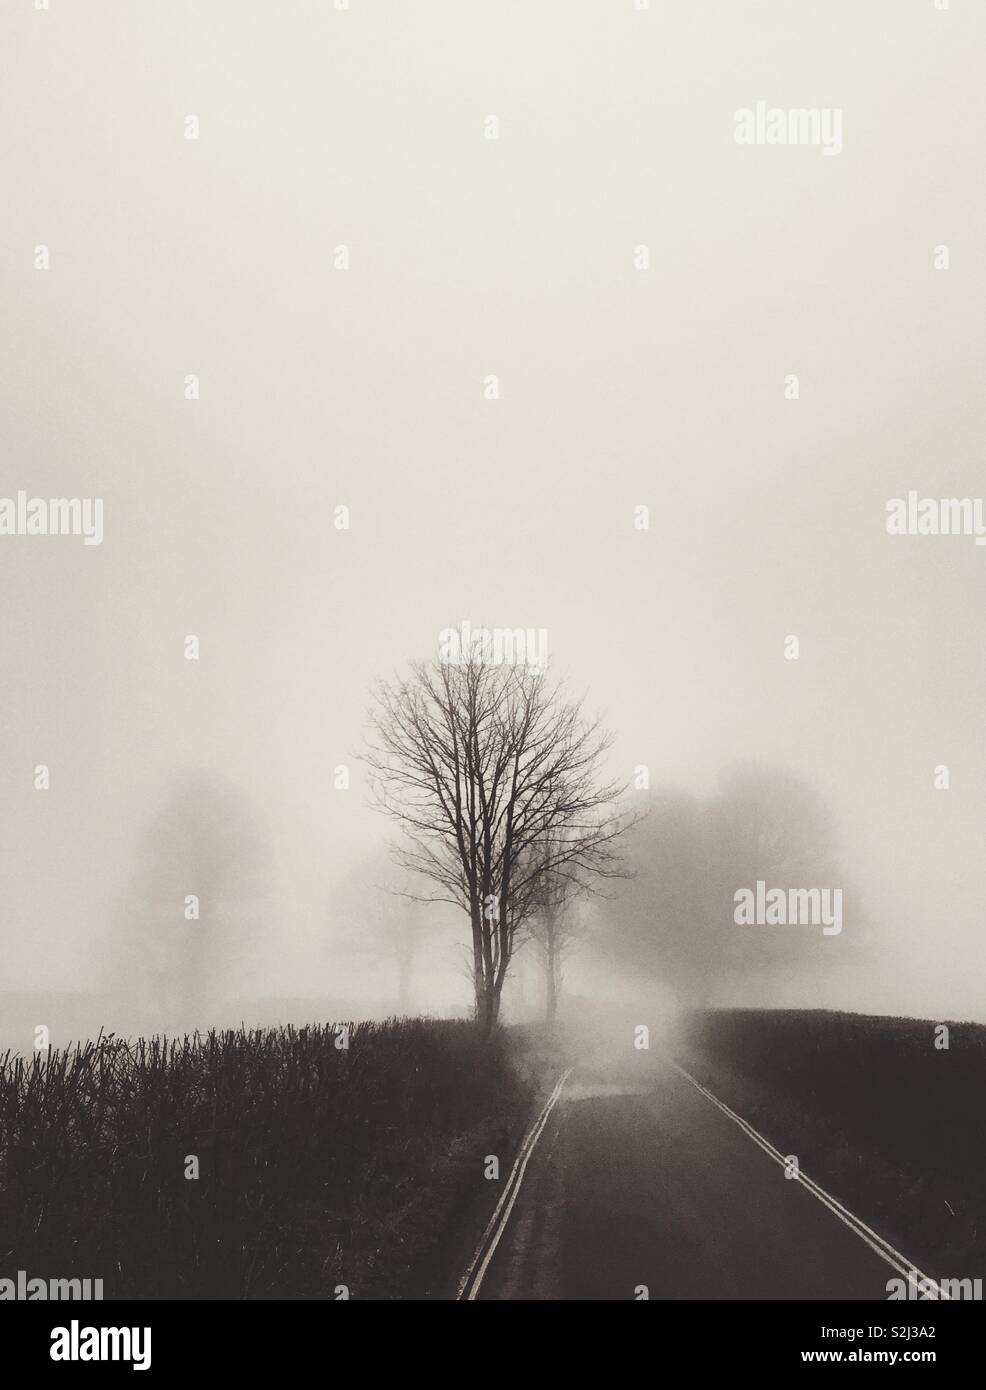 A foggy lane with trees - Stock Image